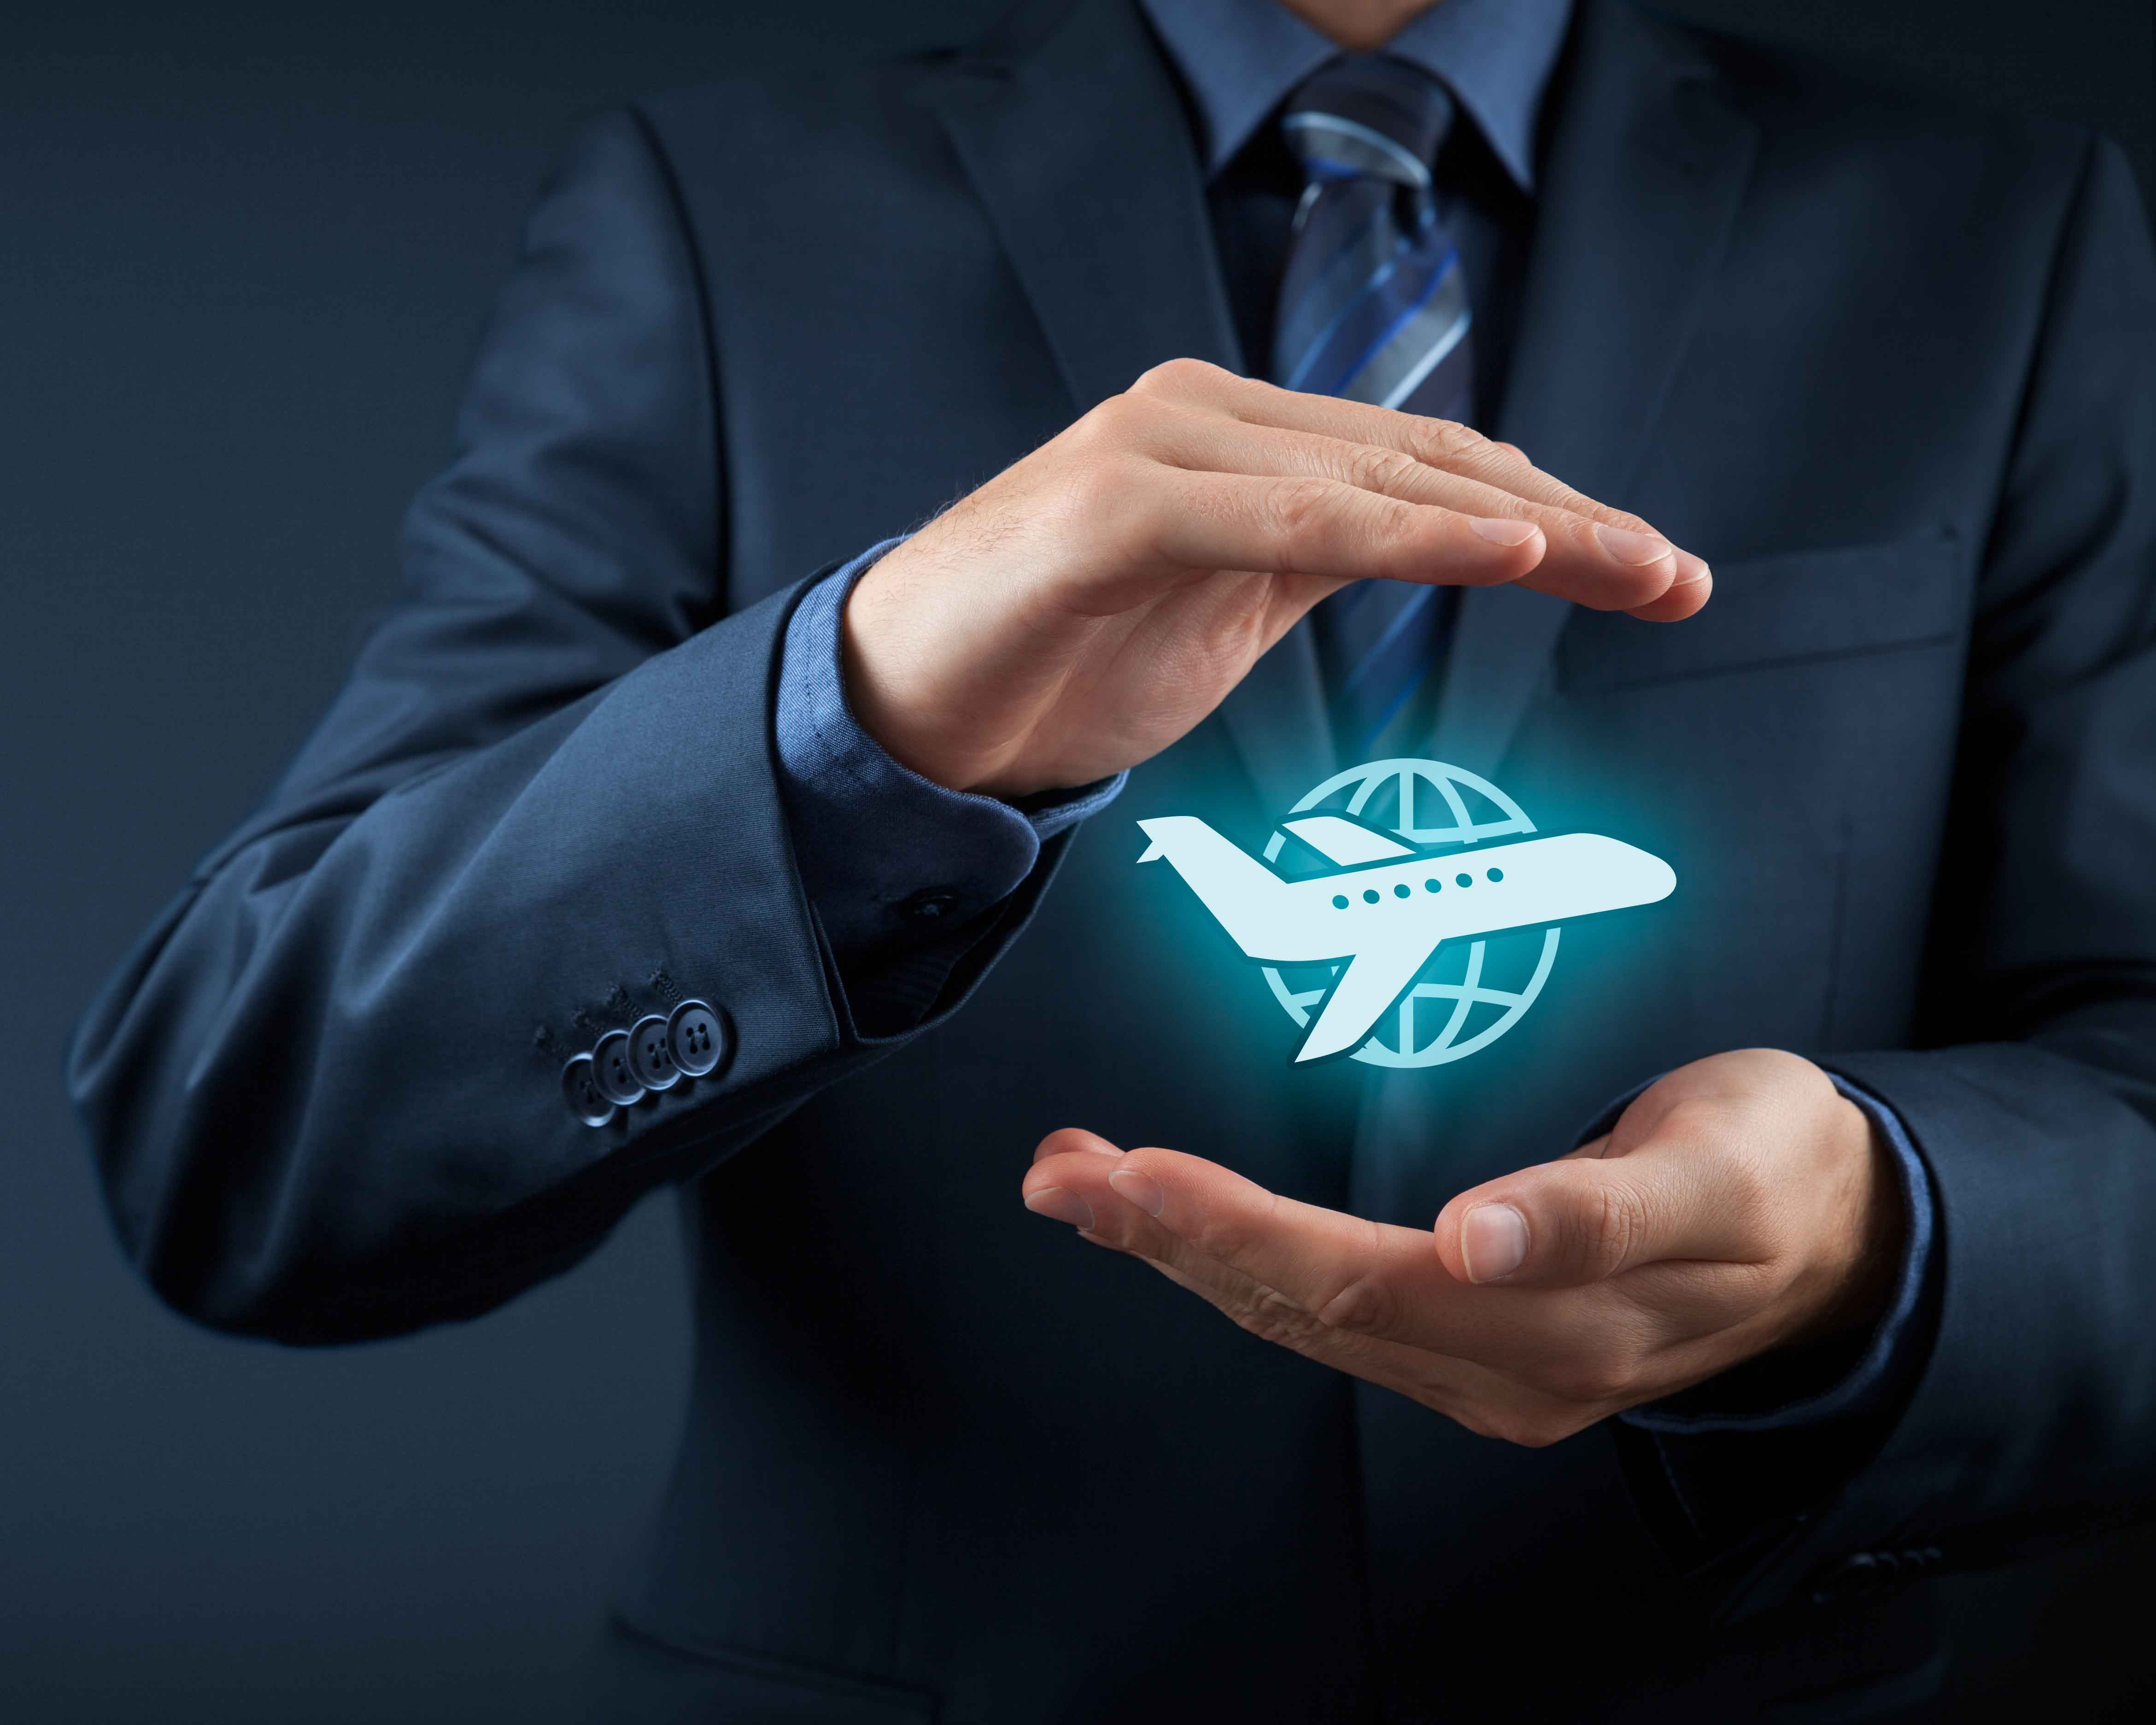 hands holding a globe with a plane